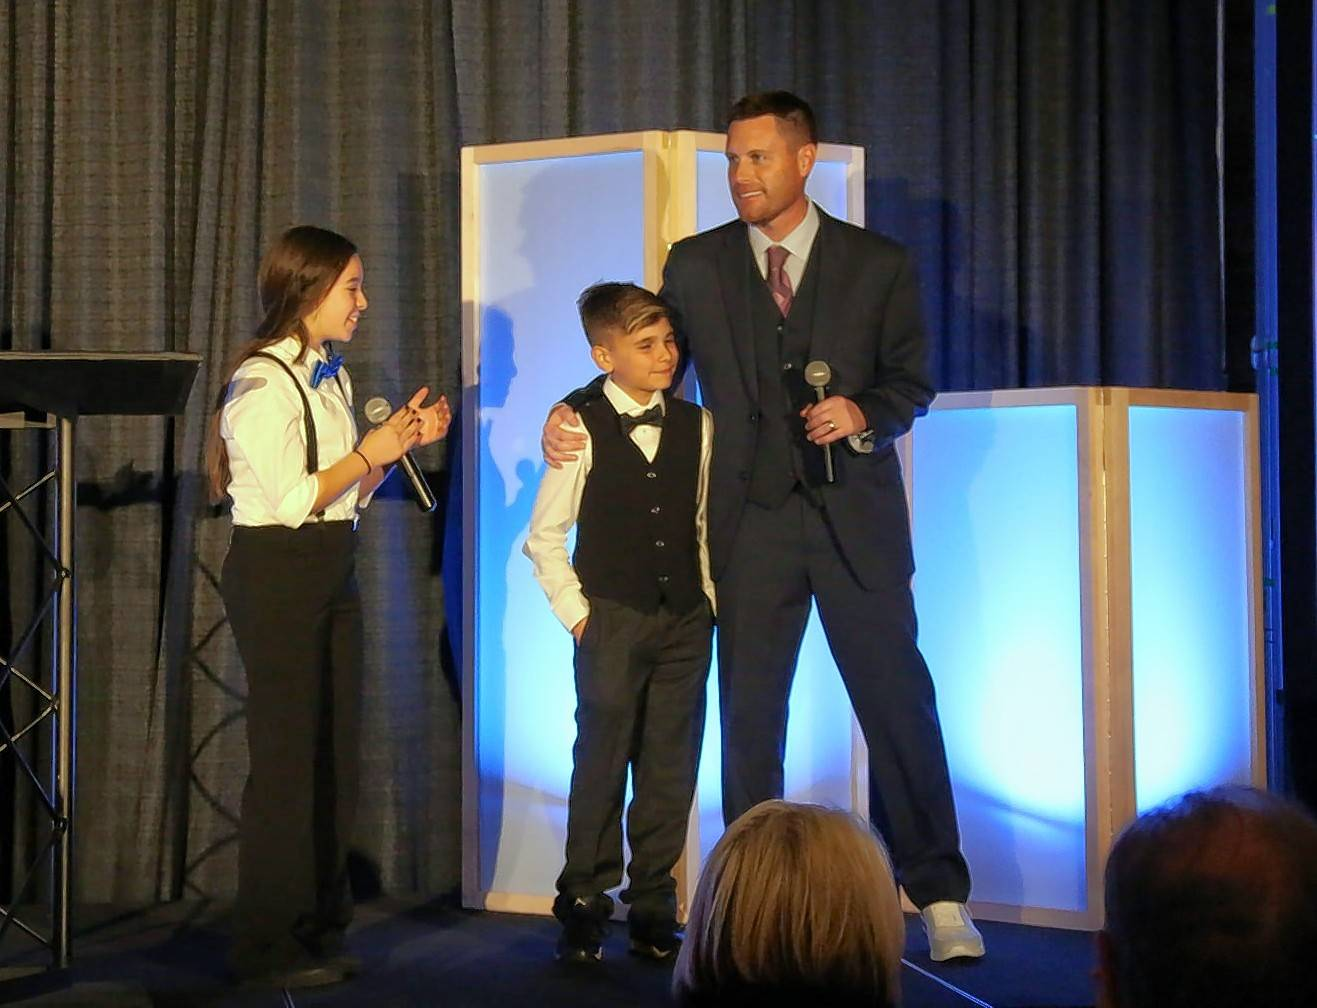 Curt McReynolds, CEO and president of the Boys & Girls Clubs of Dundee Township, stands with club members on stage at an annual fundraising event, the Tennies and Ties Gala. McReynolds is leaving May 19 to take a new role at the Boys & Girls Clubs of Greater Scottsdale.